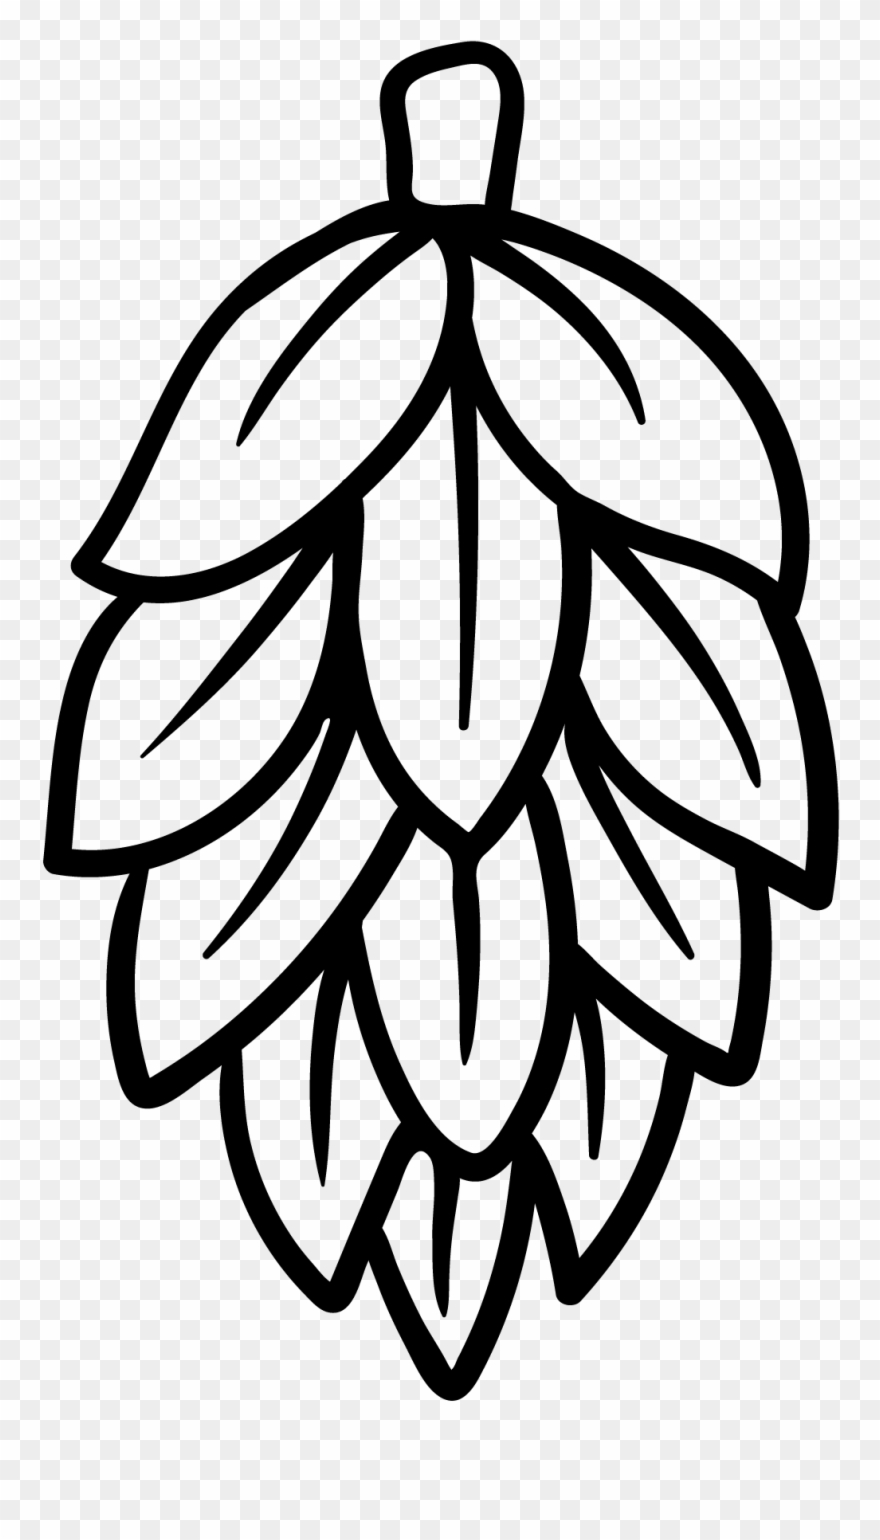 Beer hops clipart picture library stock Hops - Black And White Beer Hops Clipart (#4087912) - PinClipart picture library stock